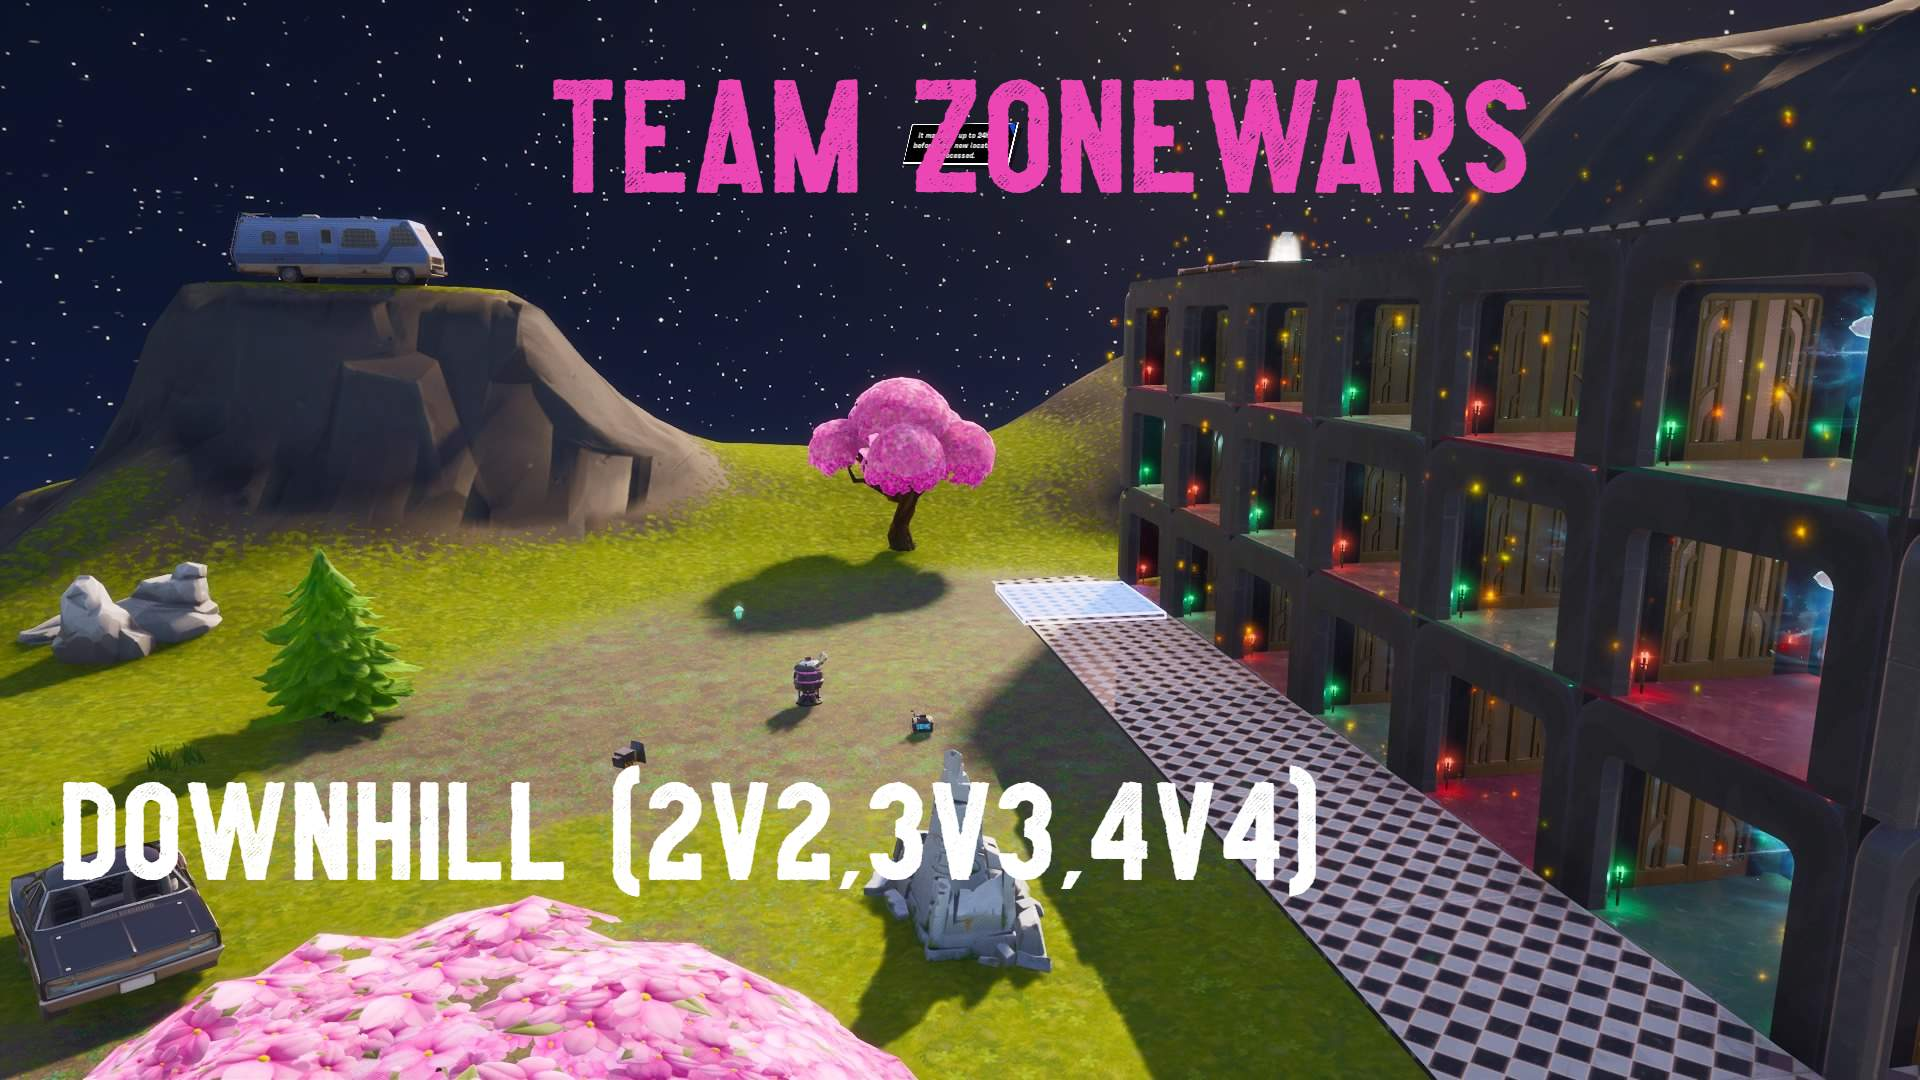 DOWNHILL TEAM ZONEWARS [2V2/3V3/4V4]